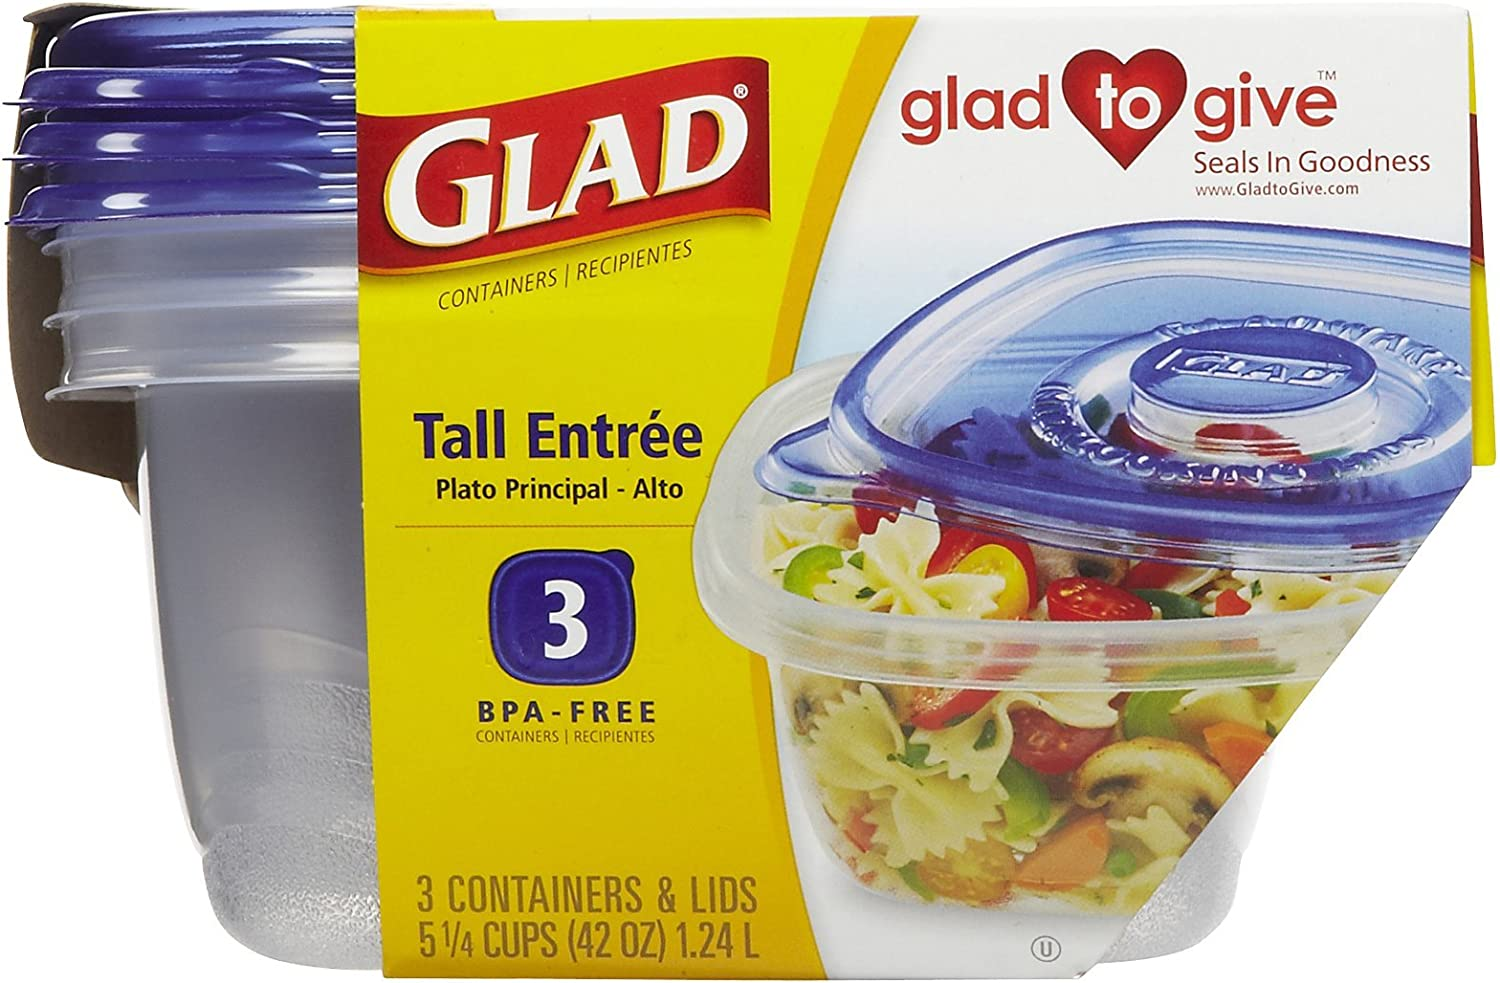 GLAD Tall Entree 3 Disposable Container & Lids 5 1/4 Cups